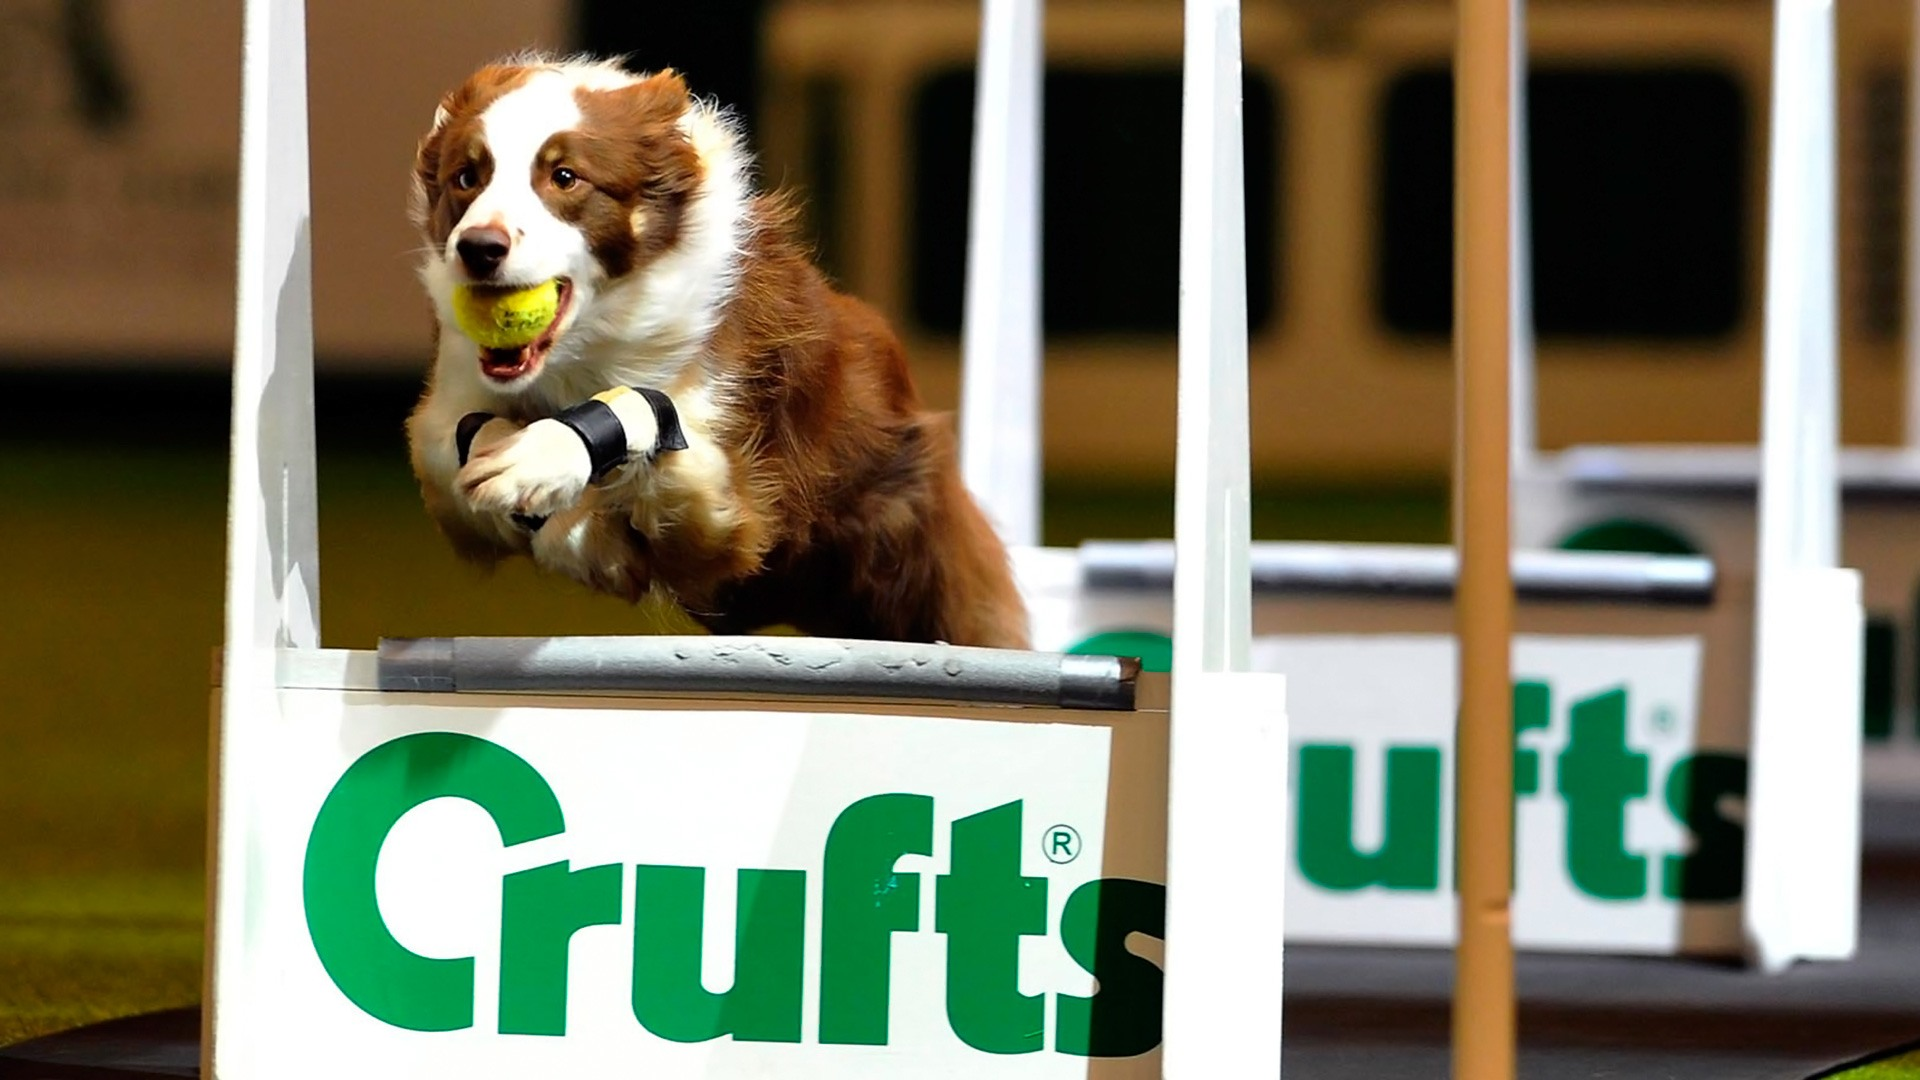 Crufts 2018 Schedules and Ticket Price Information